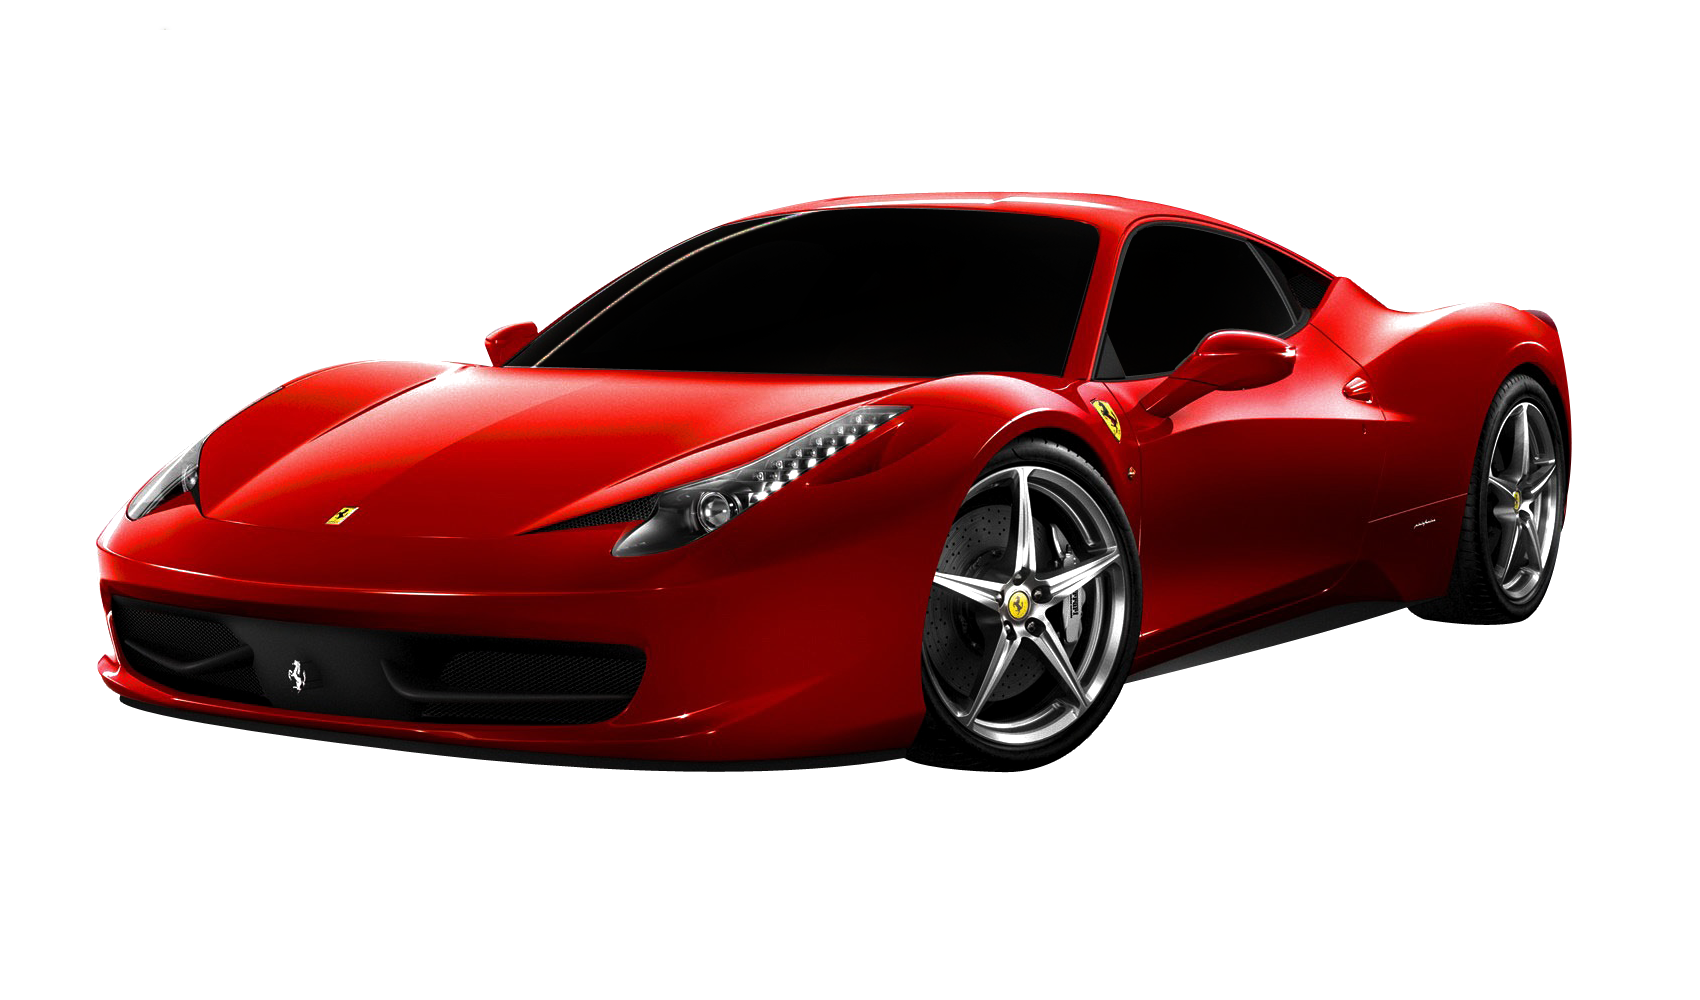 Ferrary clipart royalty free download Free Ferrari Cliparts, Download Free Clip Art, Free Clip Art on ... royalty free download